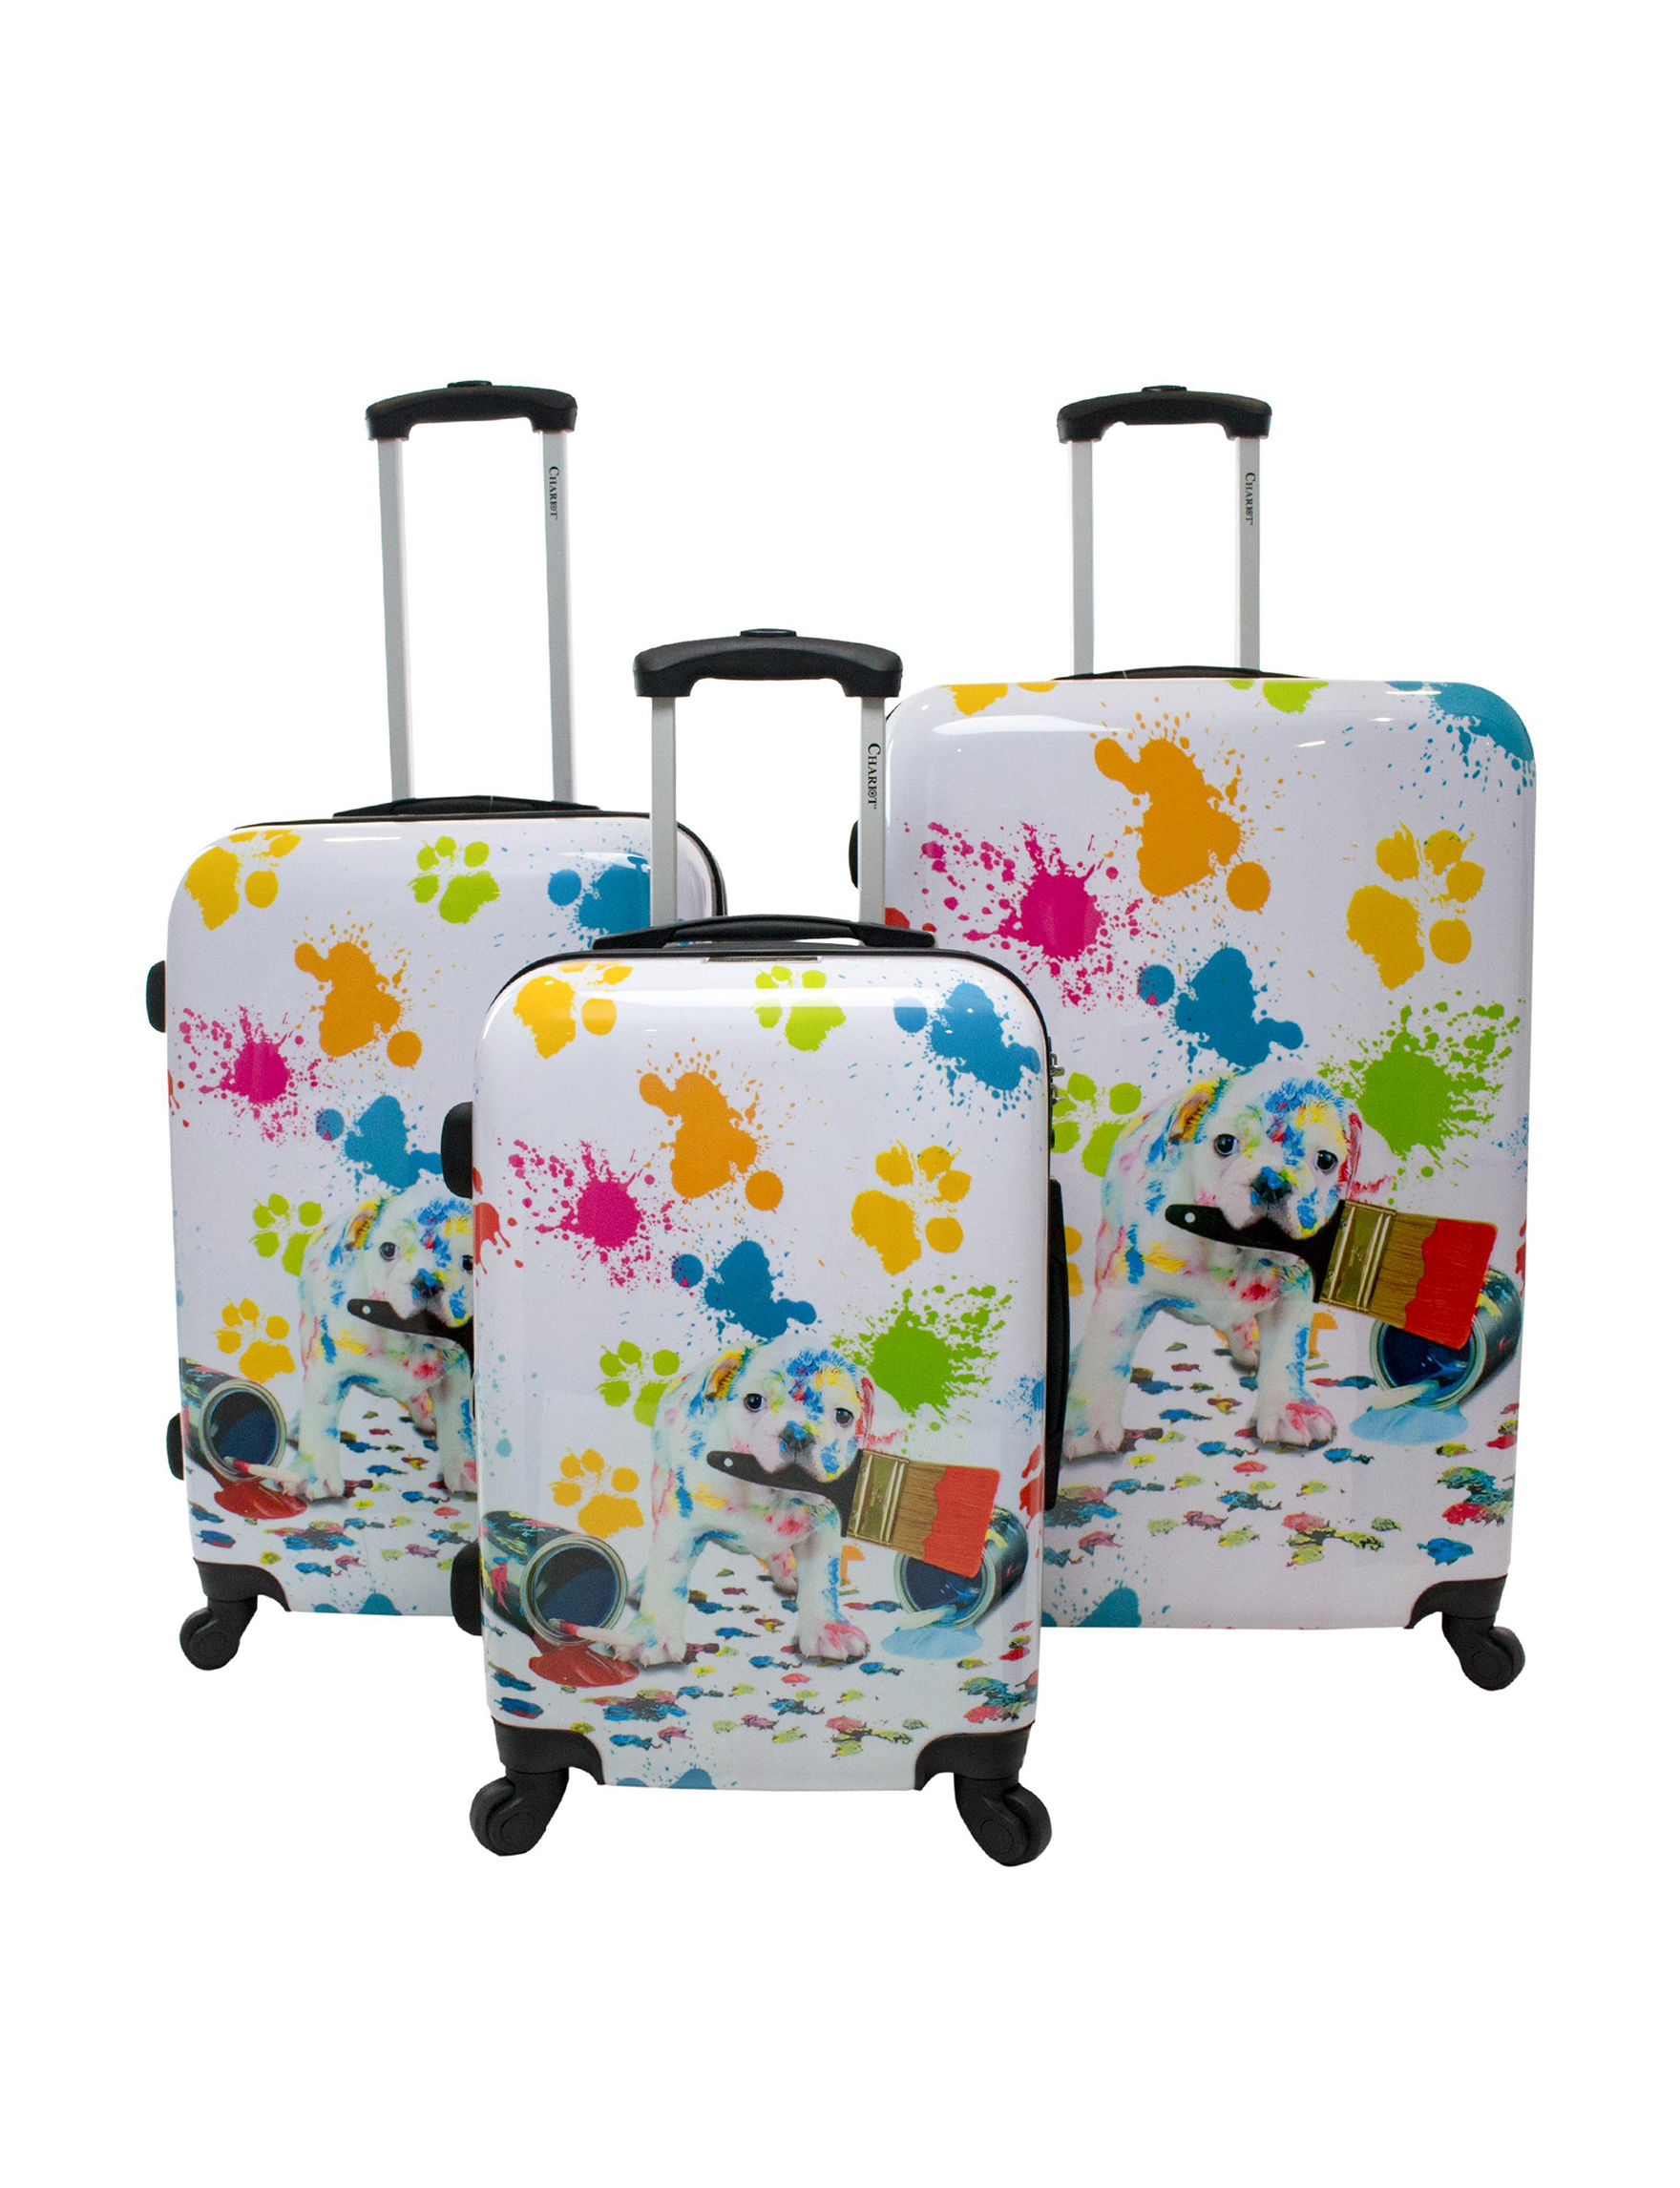 Chariot Travelware White / Multi Luggage Sets